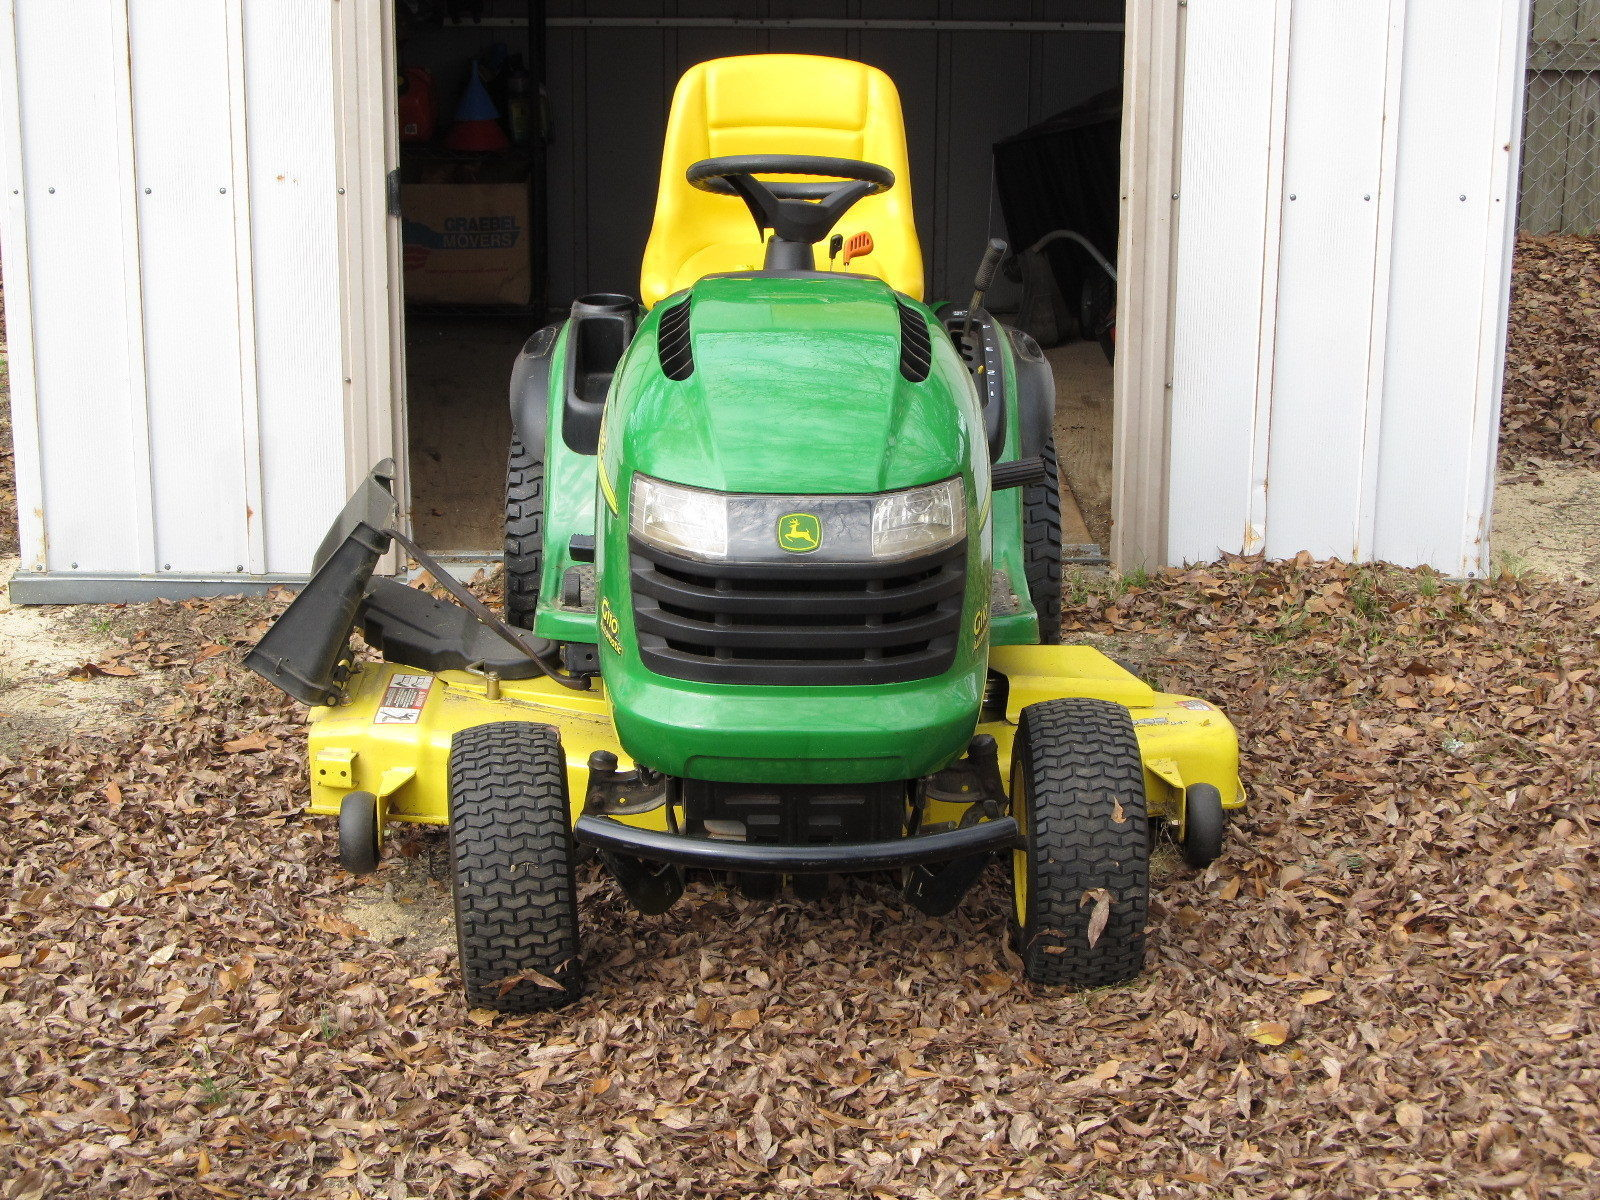 Riding lawn mower won t start - John Deere Doesn T Need To Respond To This I M Very Satisfied With My Lawn Tractor